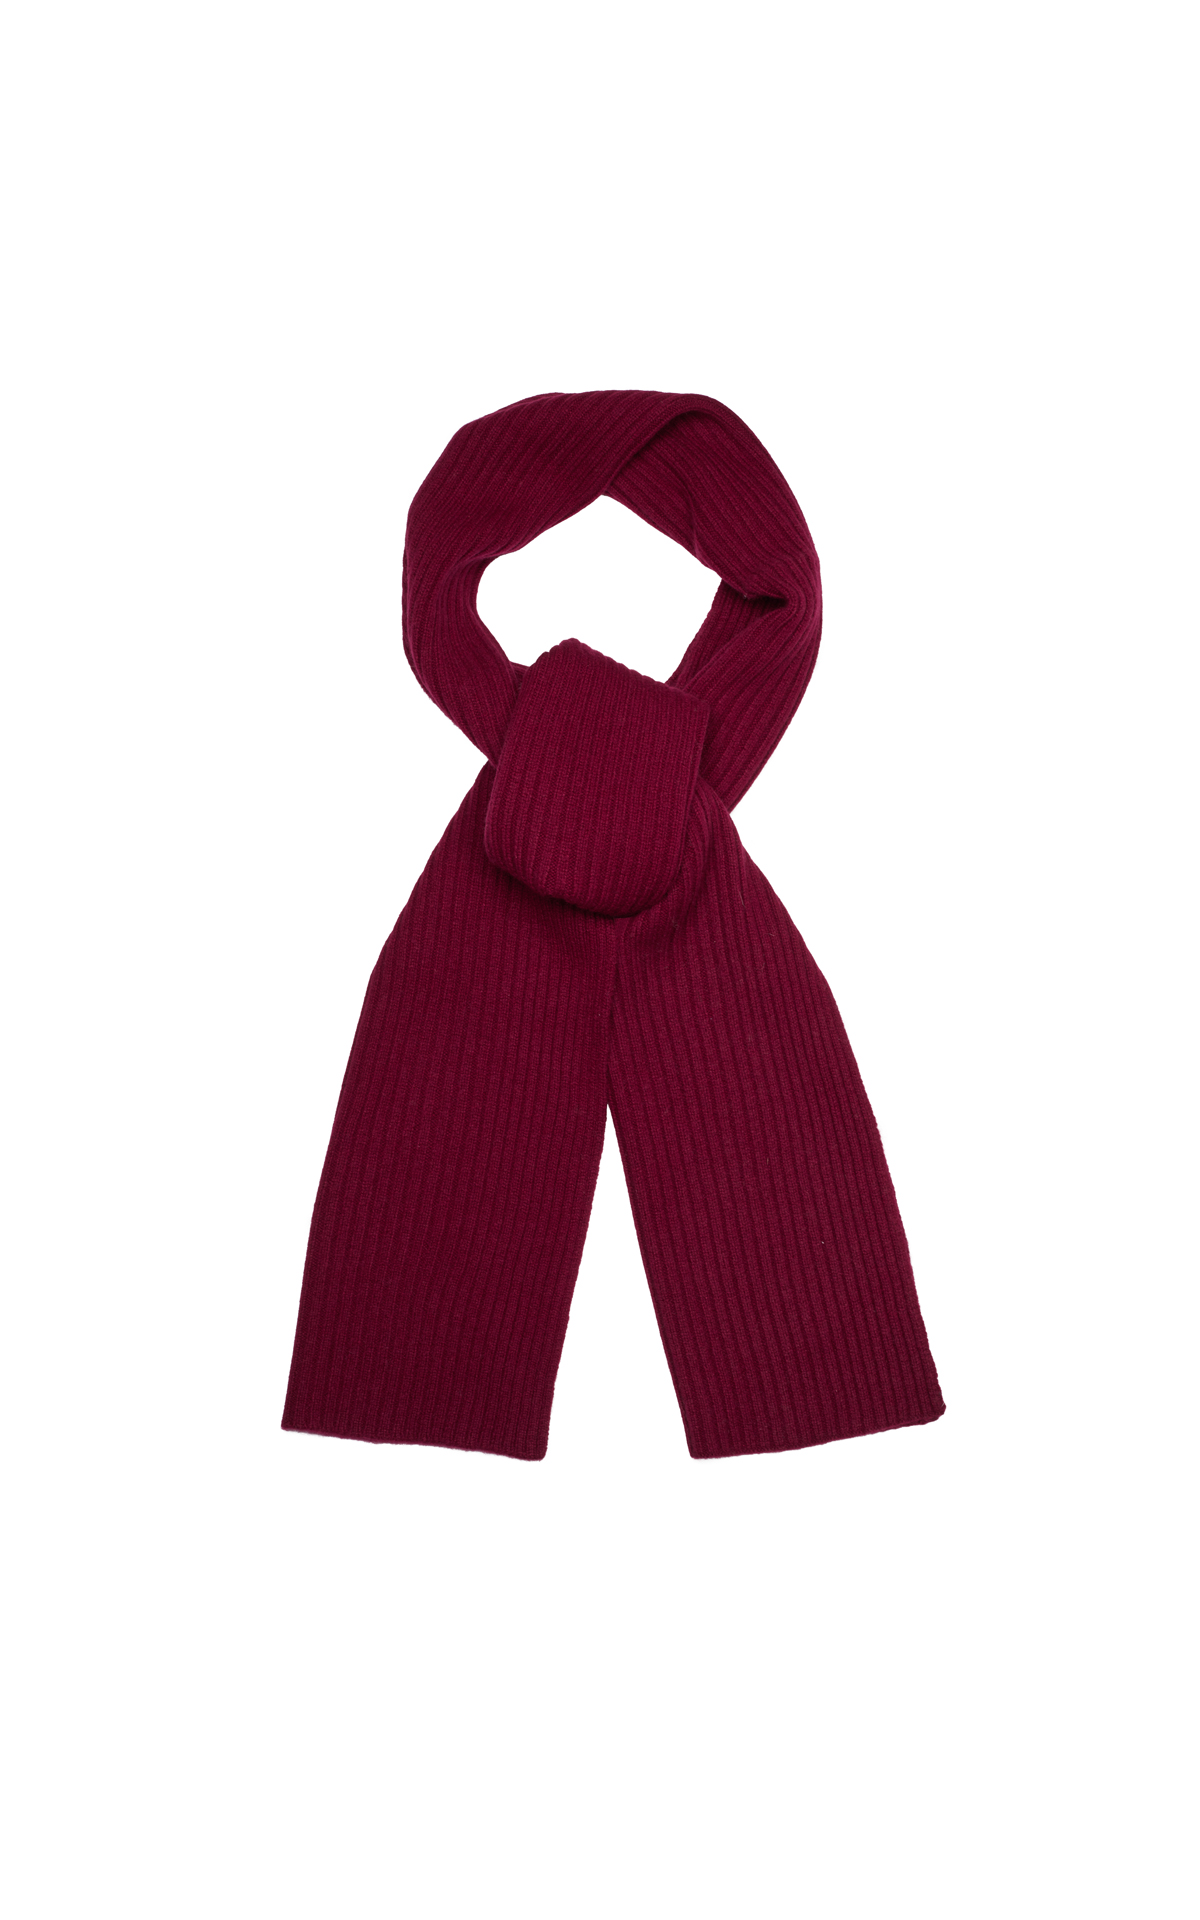 N.Peal Short ribbed scarf malbec from Bicester Village